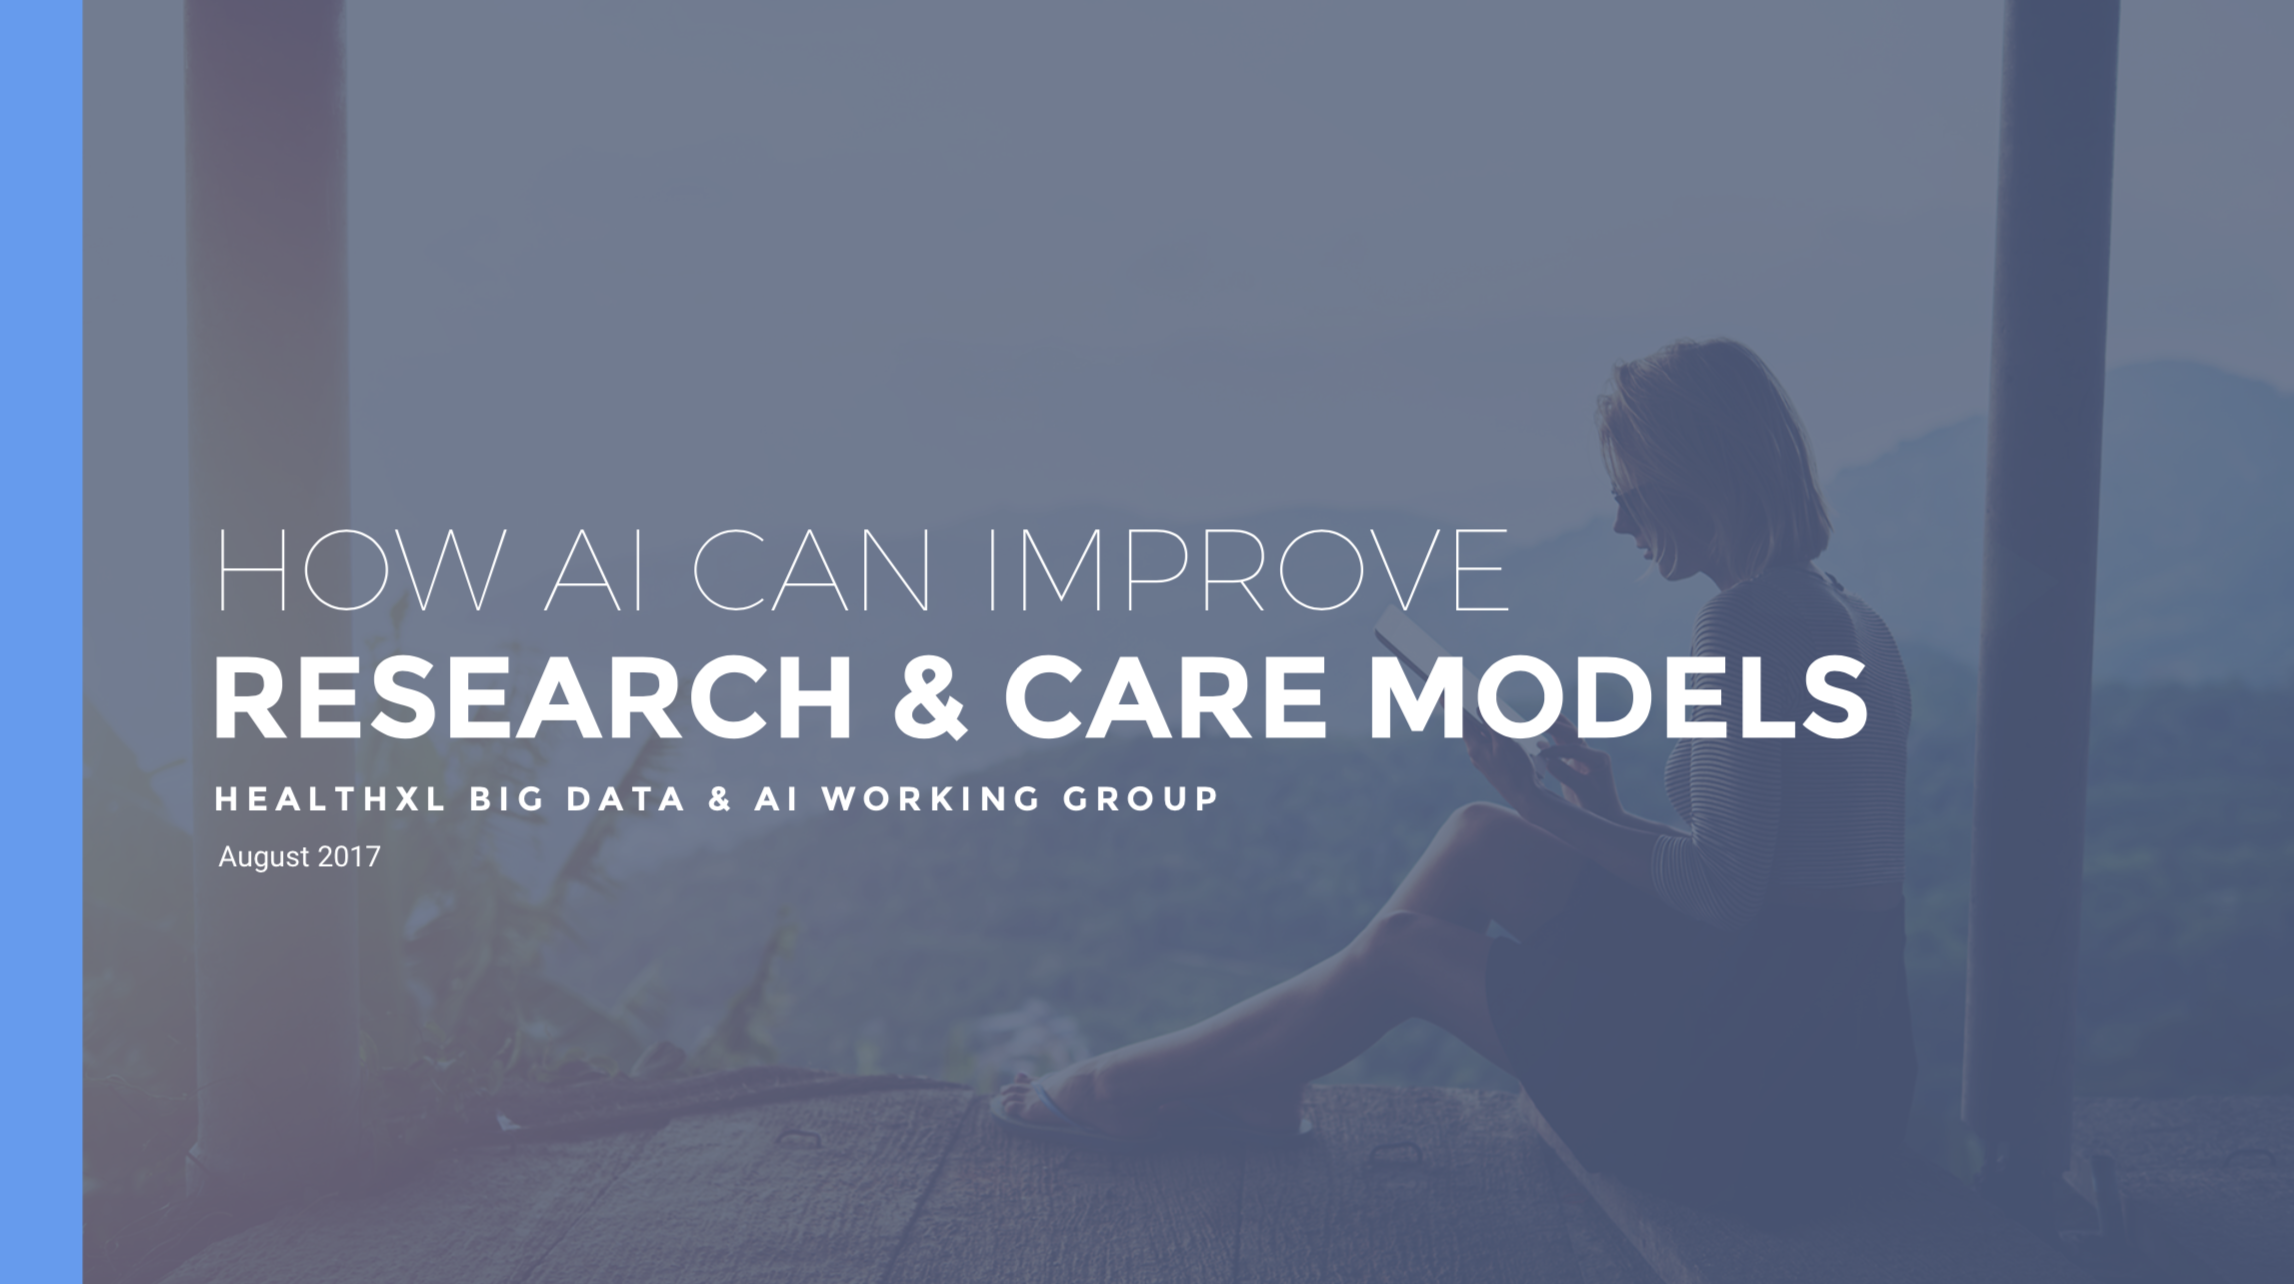 How AI can improve research and care models - August 2017. Volar Health, Patchwise Labs, and HealthXL co-authored a report highlighting key trends enabling artificial intelligence (AI), leading use cases, and partnership models being pursued. Click on the title to download the report.